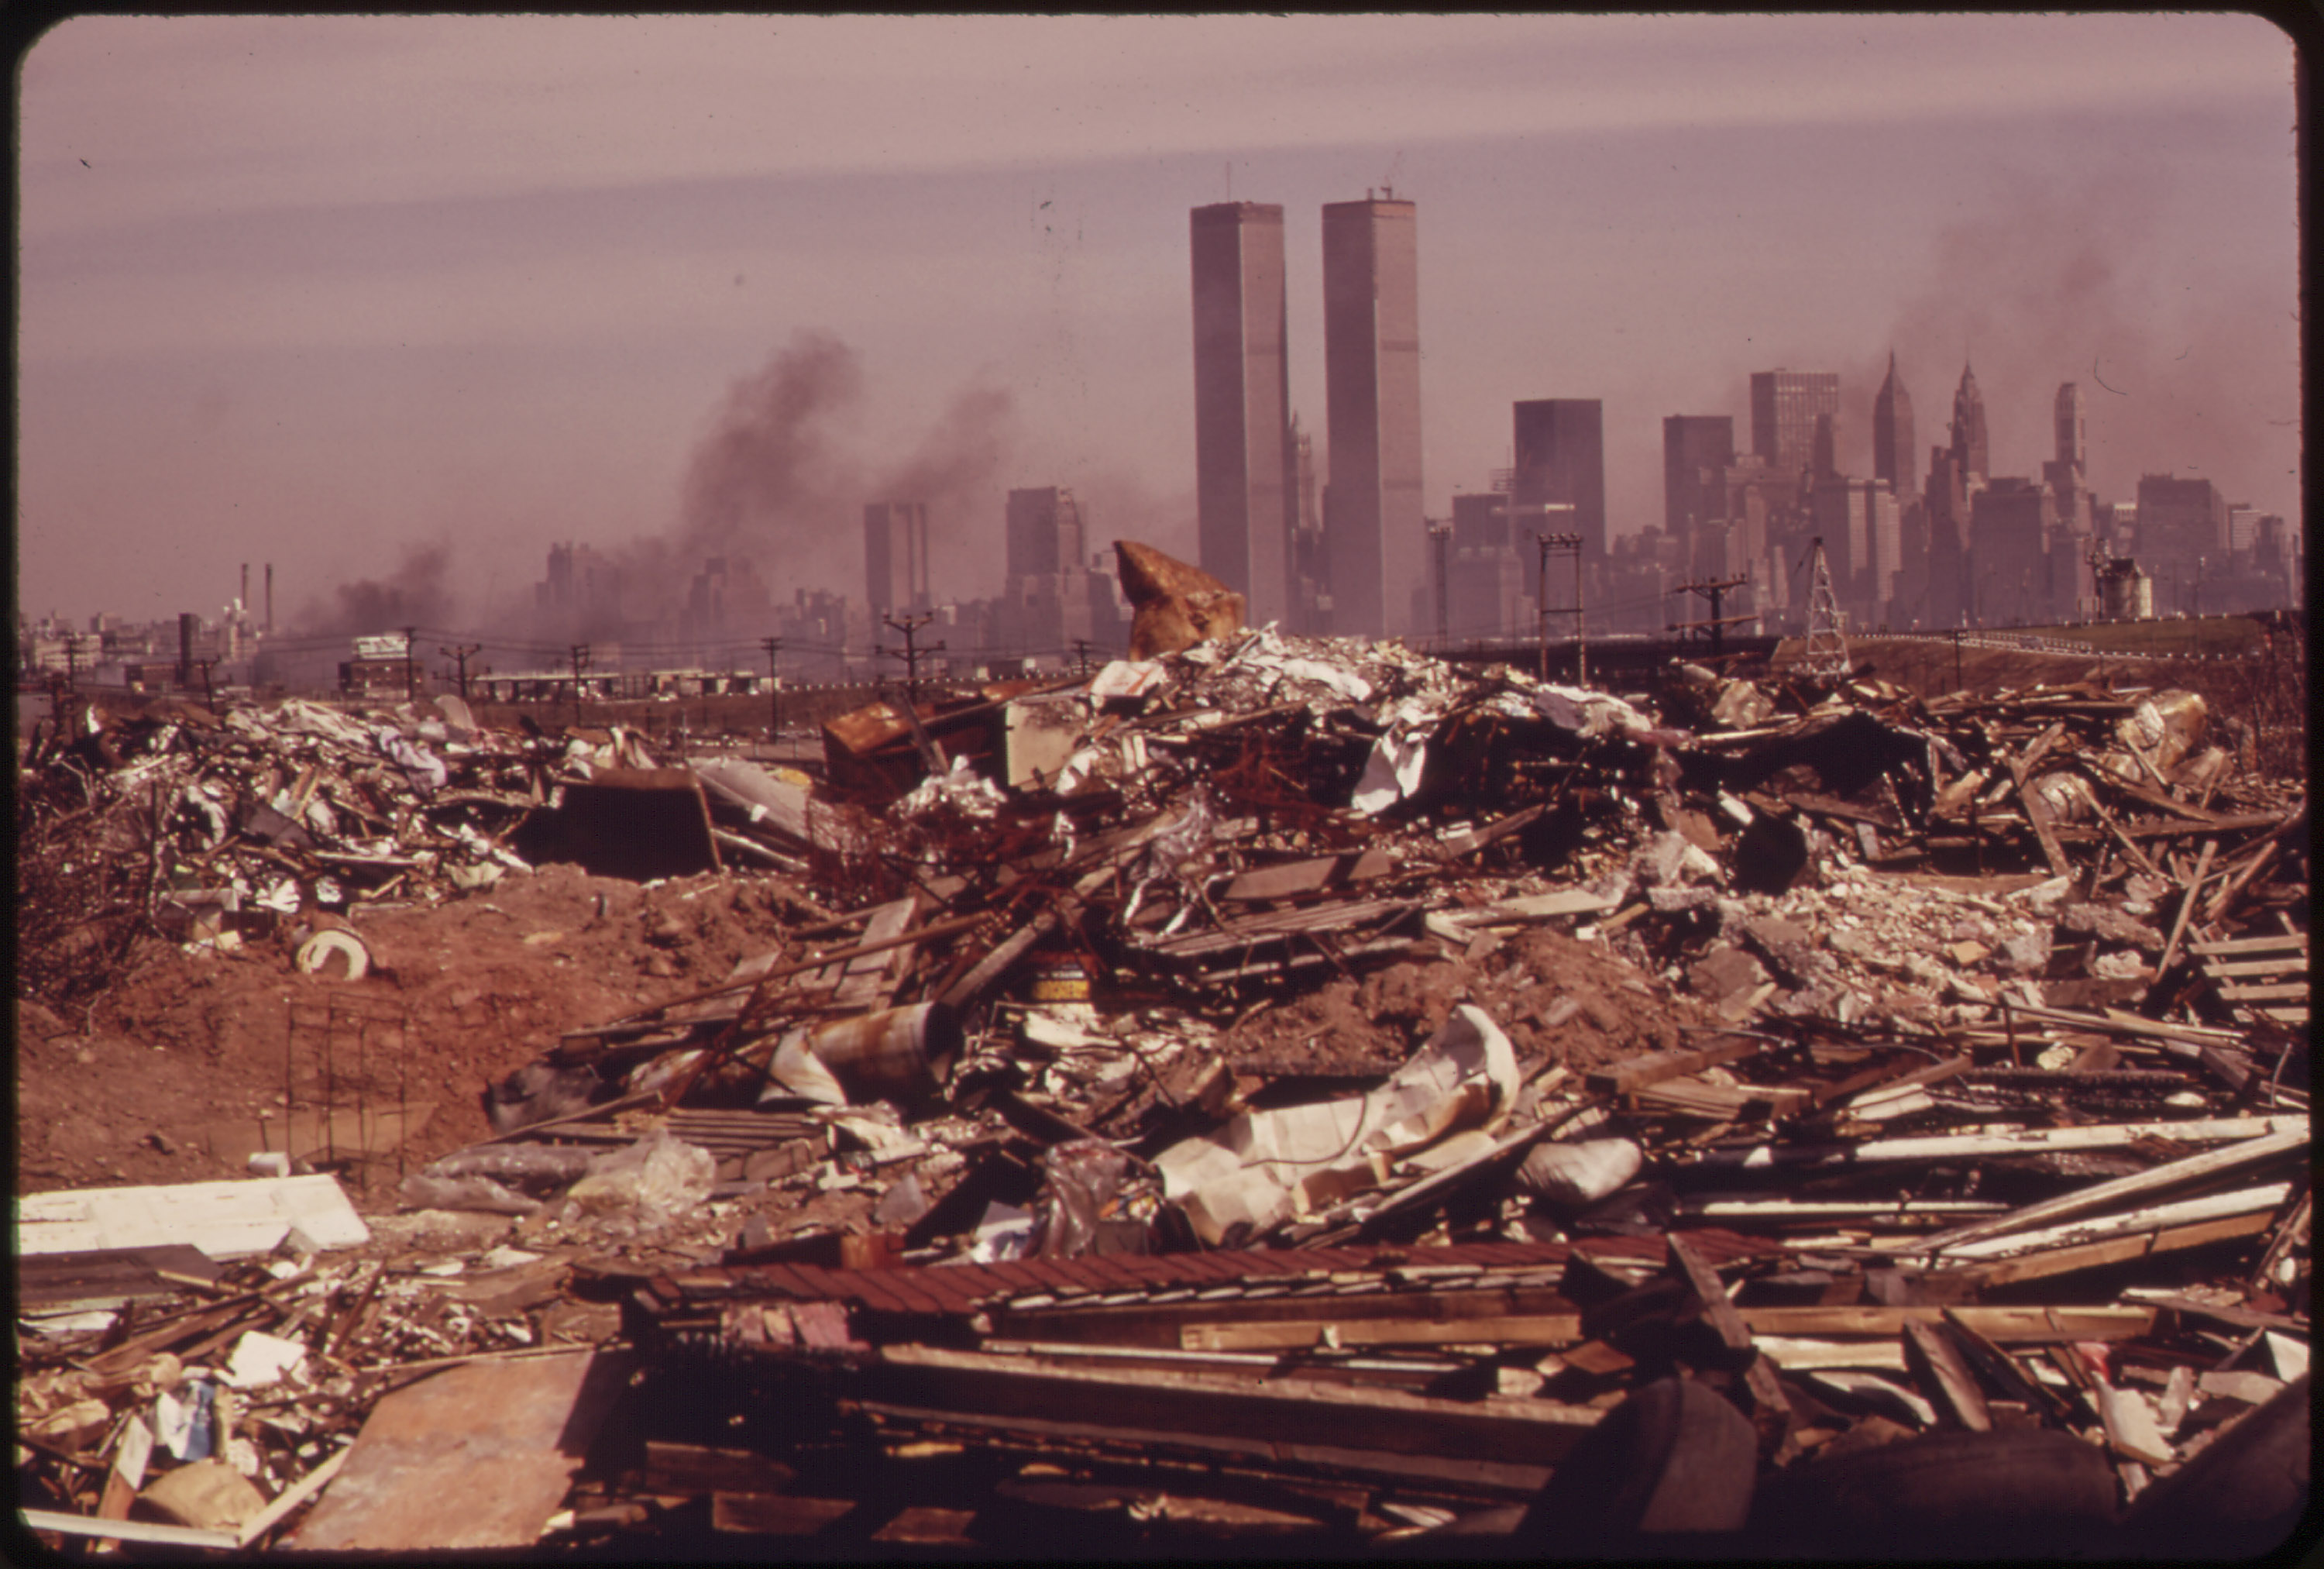 Illegal dumping grounds off the New Jersey turnpike across from Manhattan in 1973.